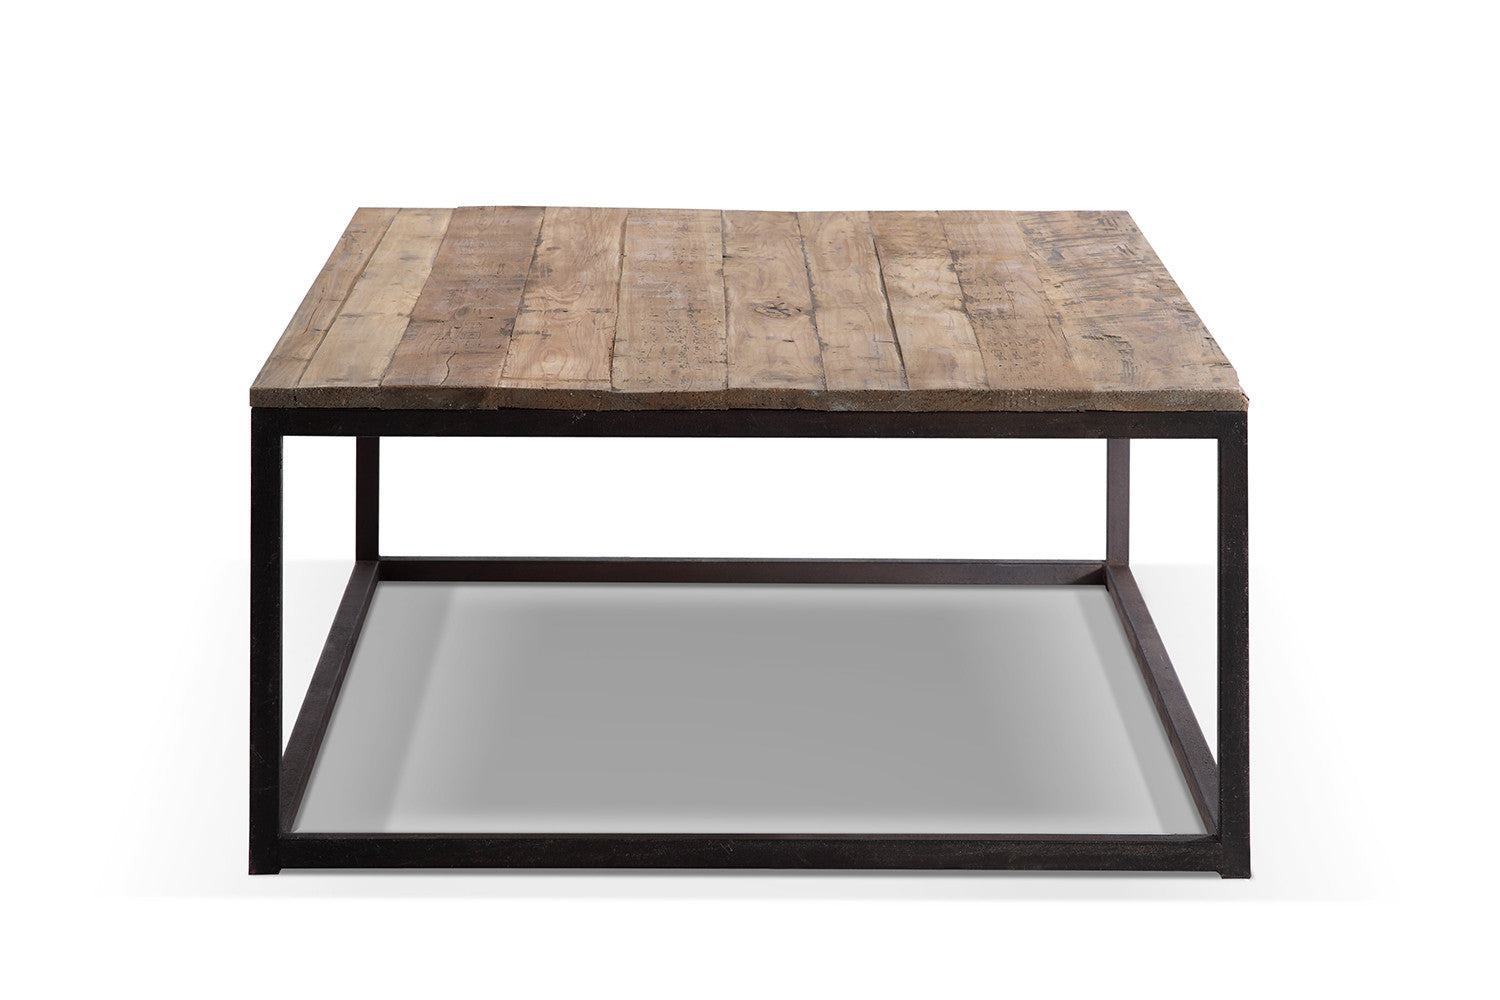 Table basse industrielle en m tal et bois tb02 rose - Table basse industrielle bois metal ...